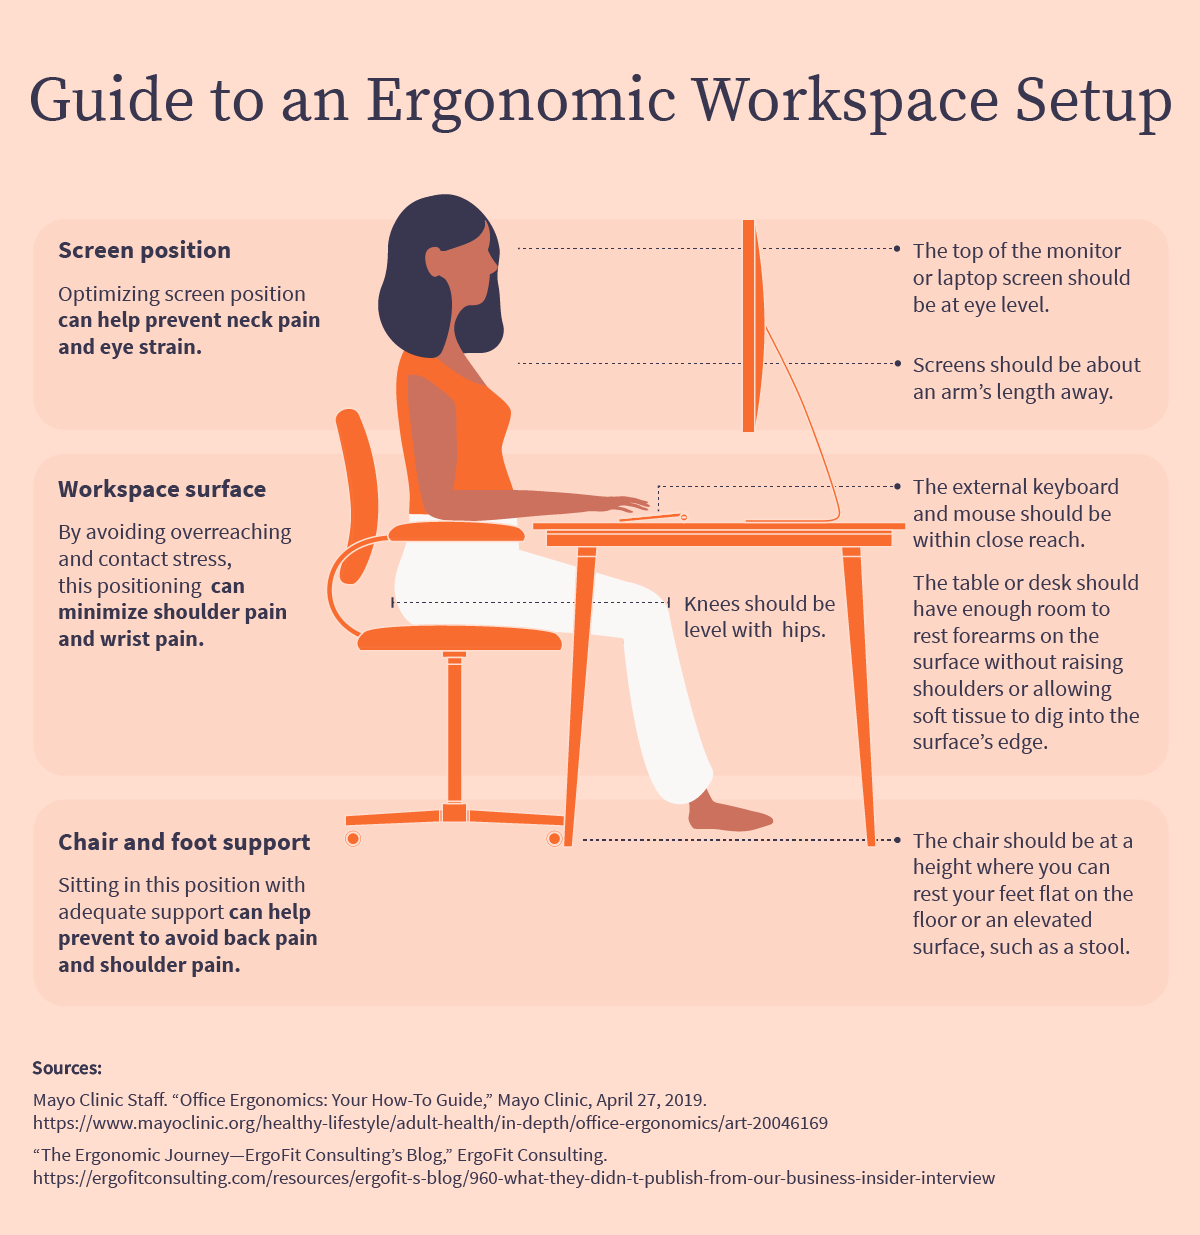 Guide to an Ergonomic Workspace Setup Graphic